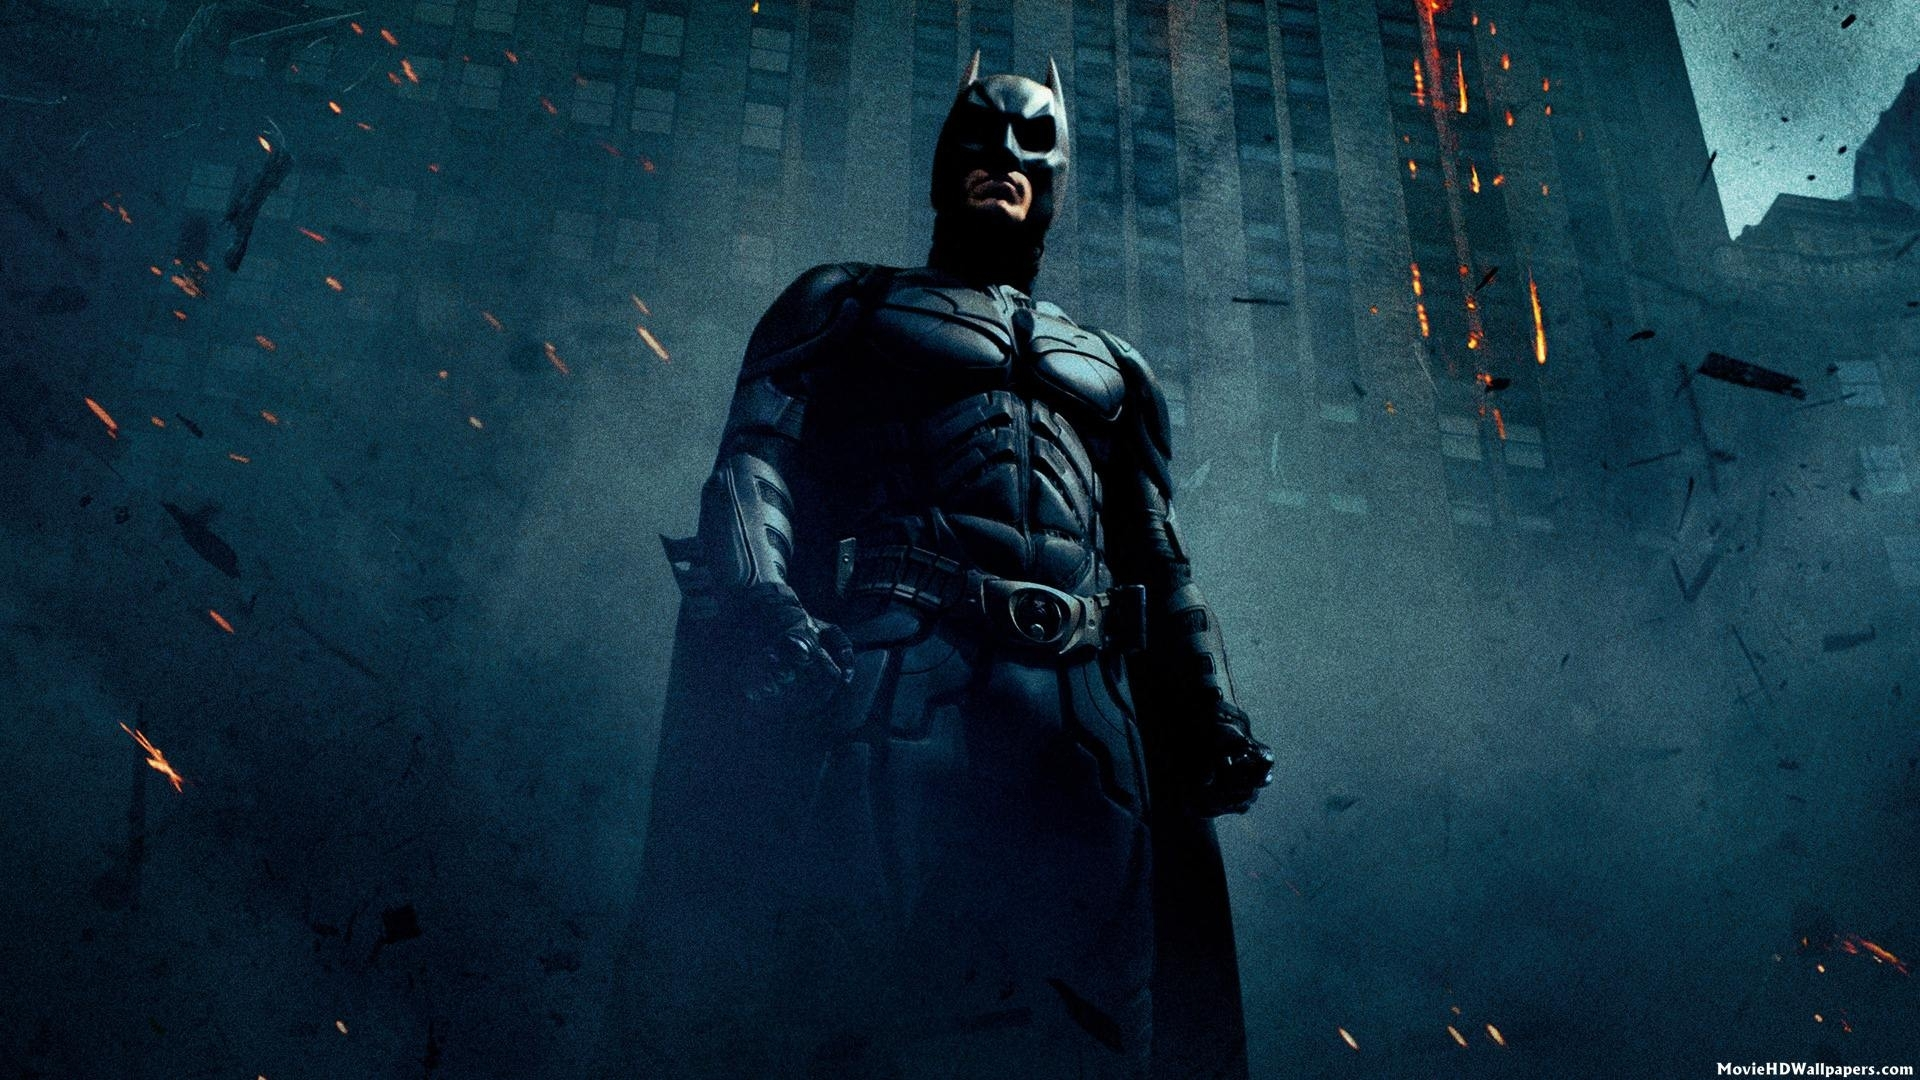 the dark knight rises hd wallpapers and desktop backgrounds 1920